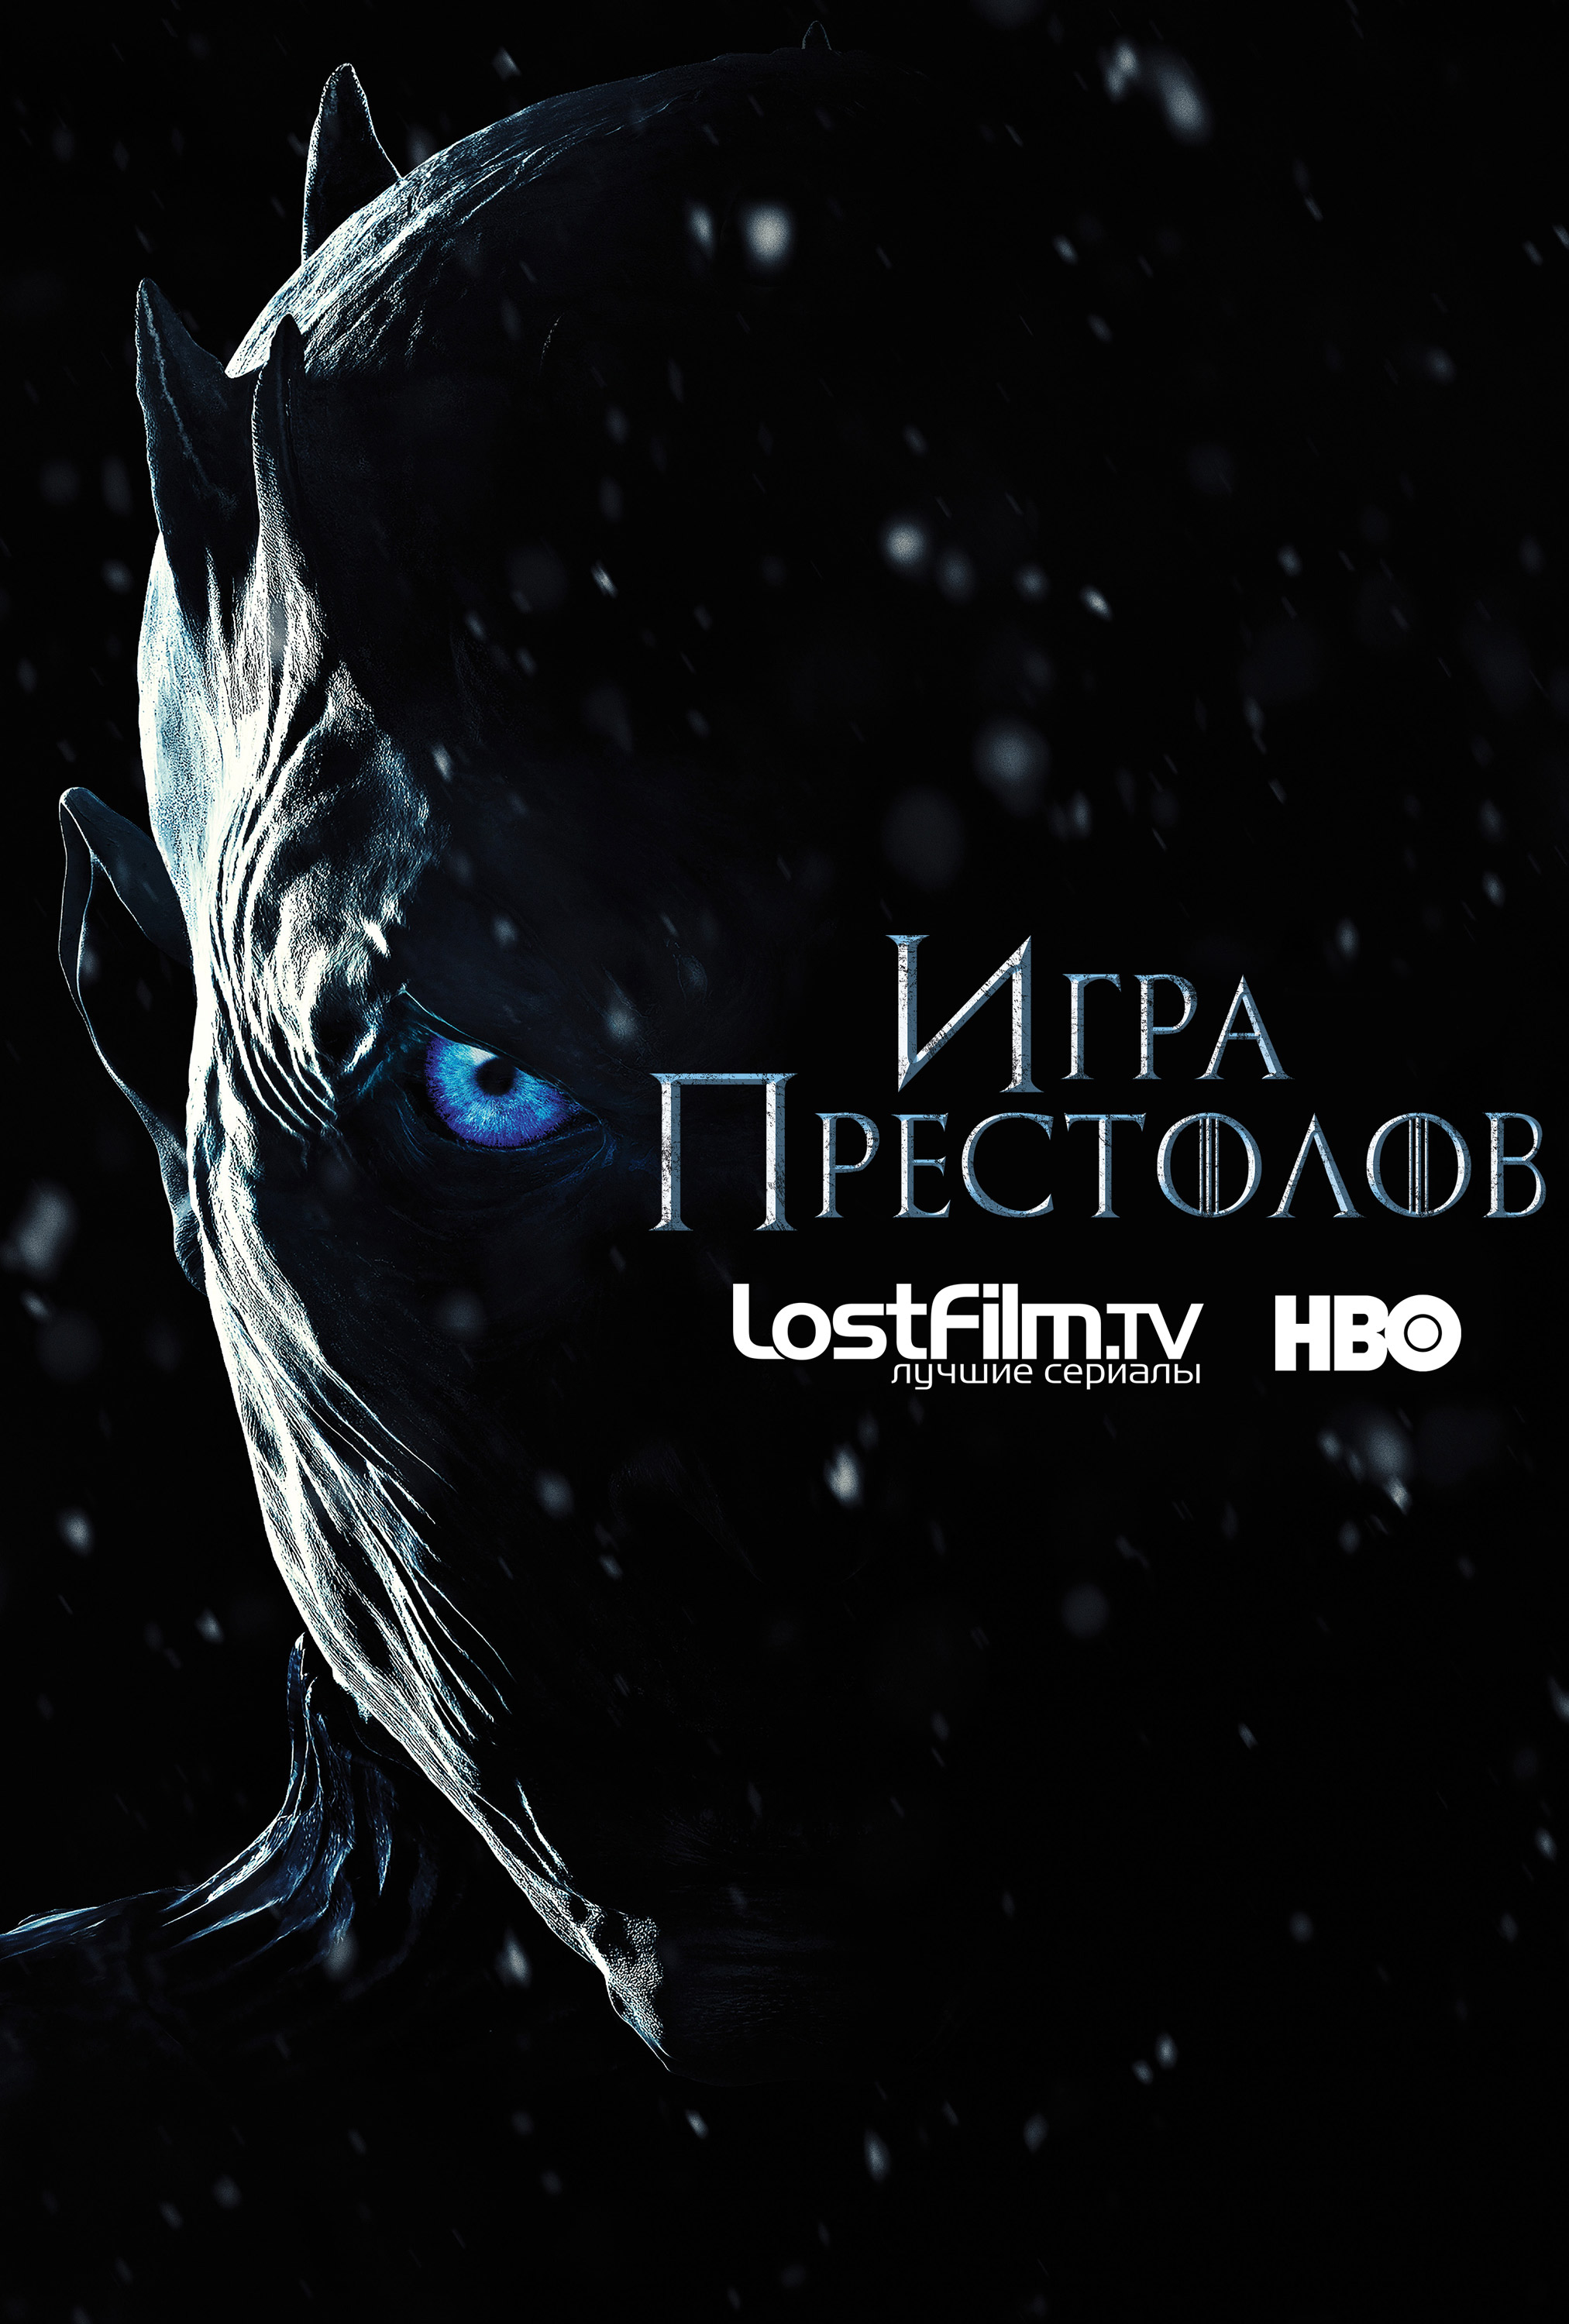 Игра престолов 1-7 сезон 1 серия LostFilm | Game of Thrones